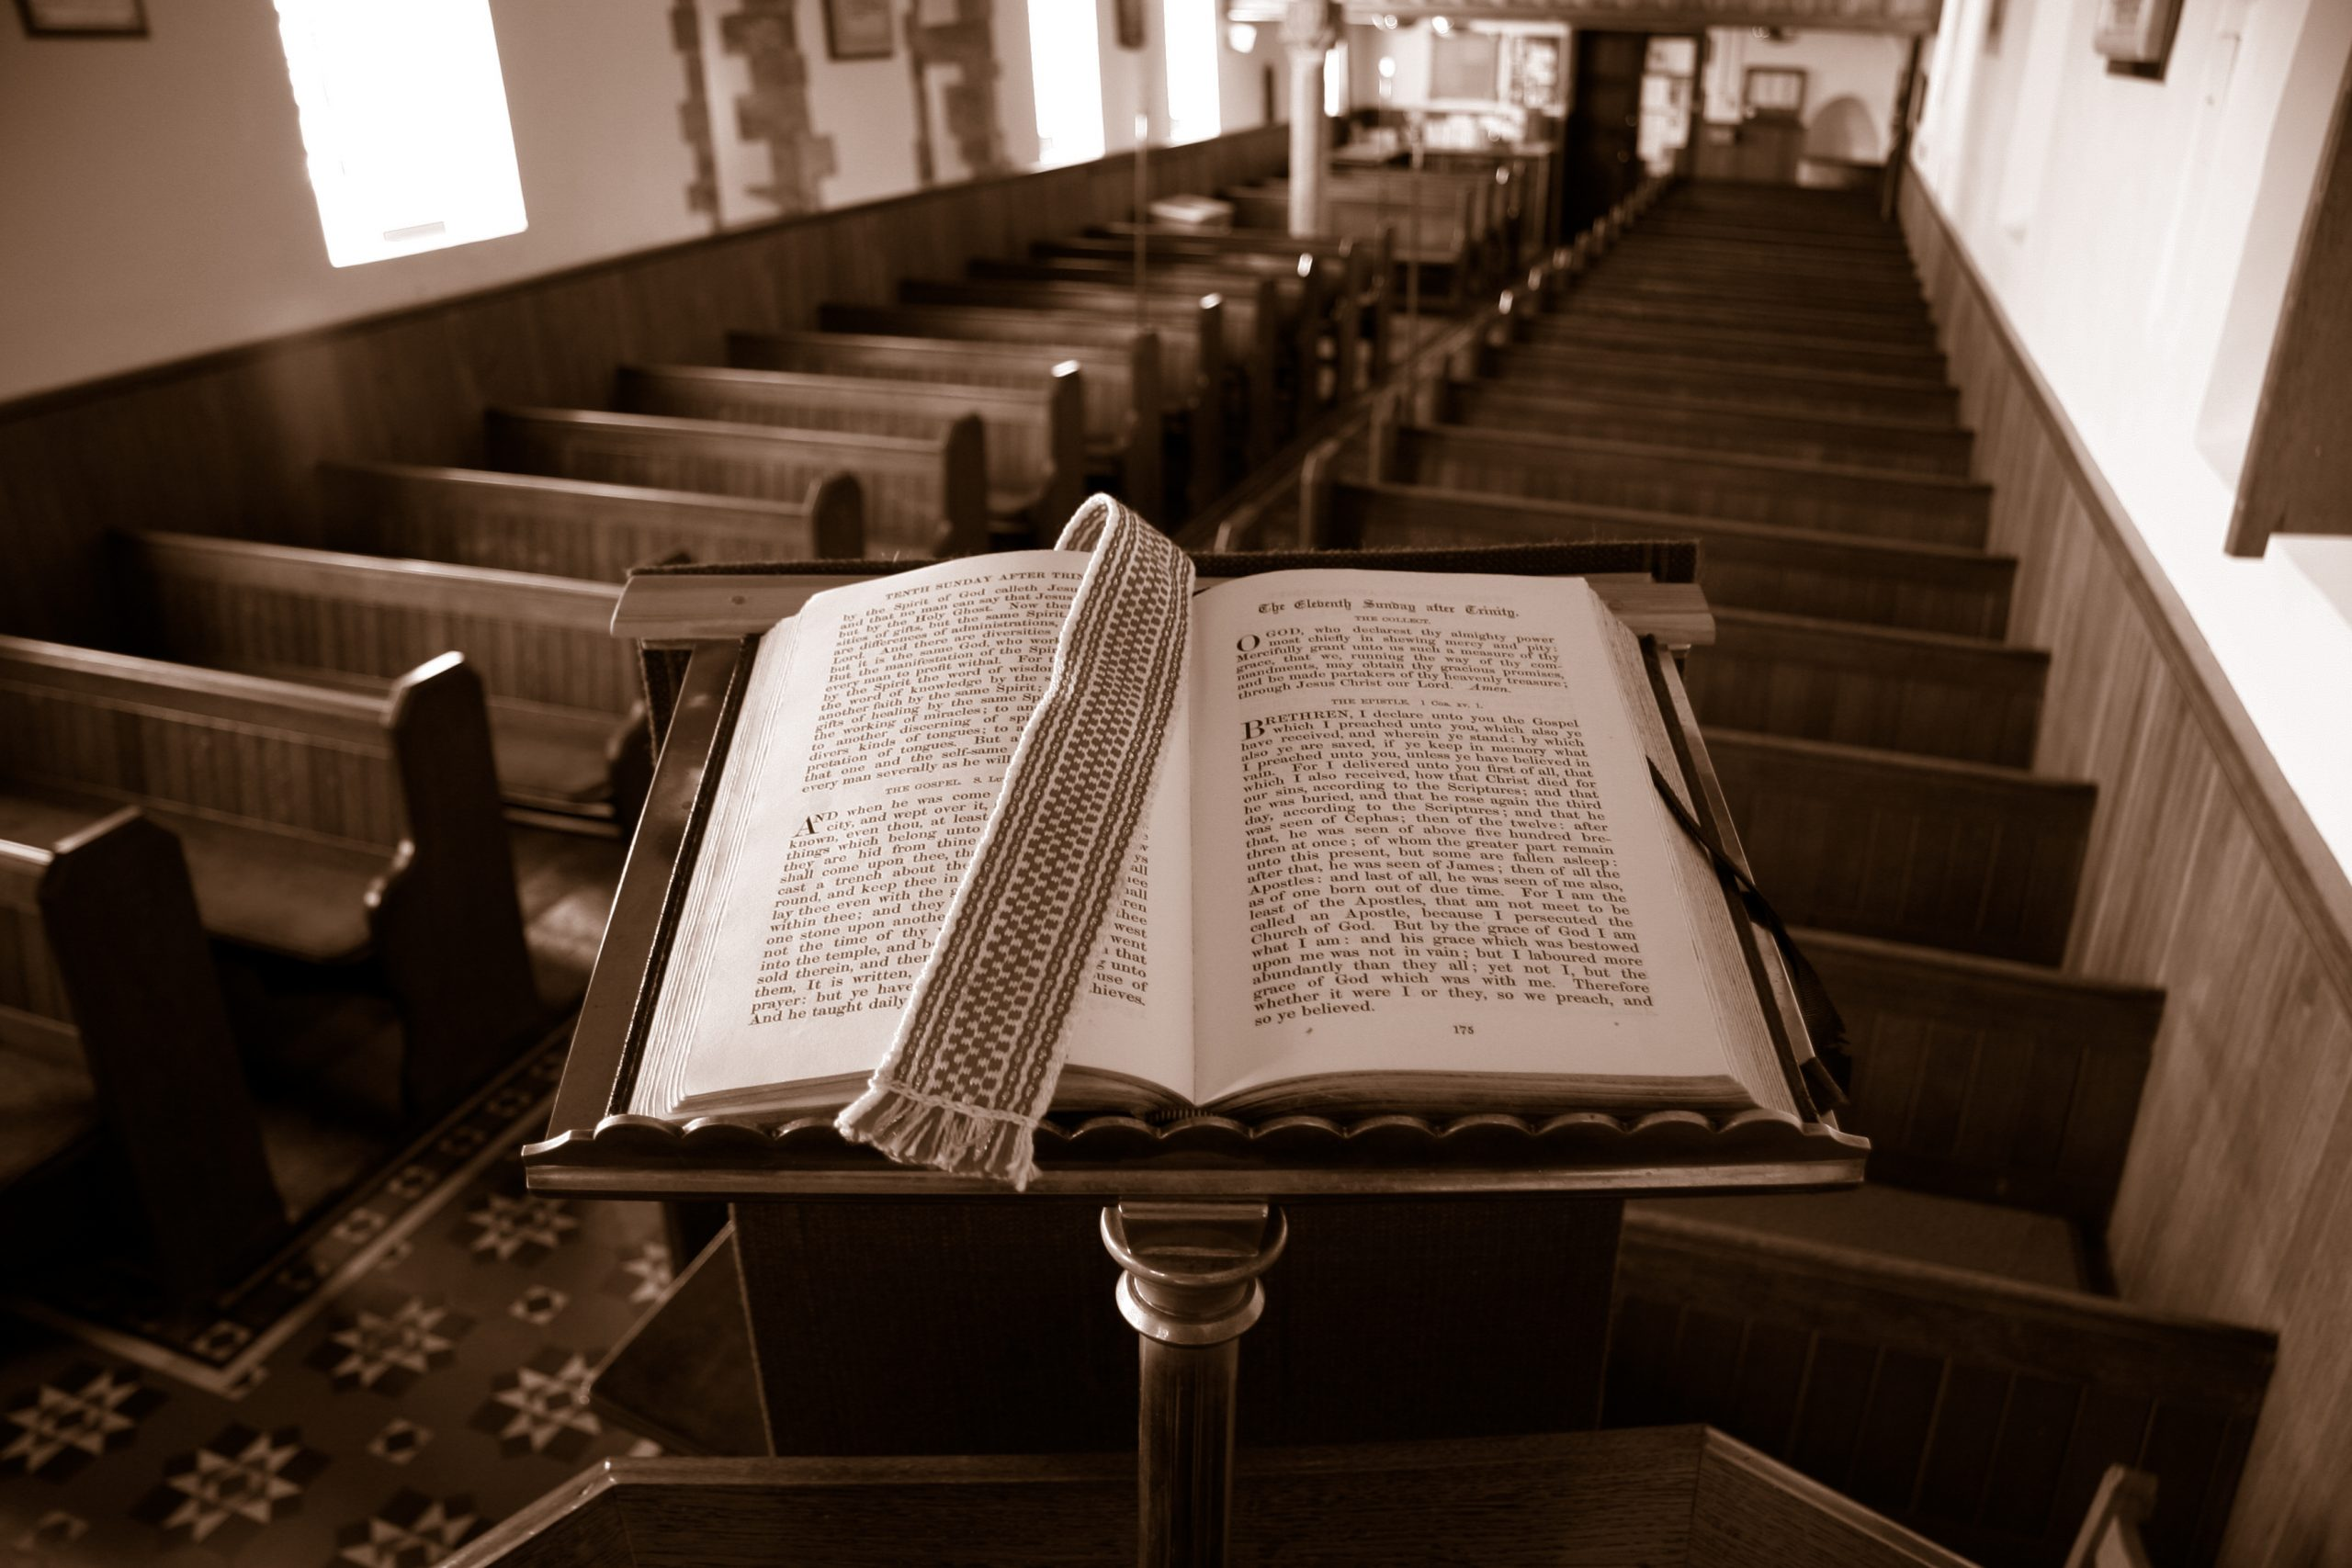 Bible Sitting on a Pulpit